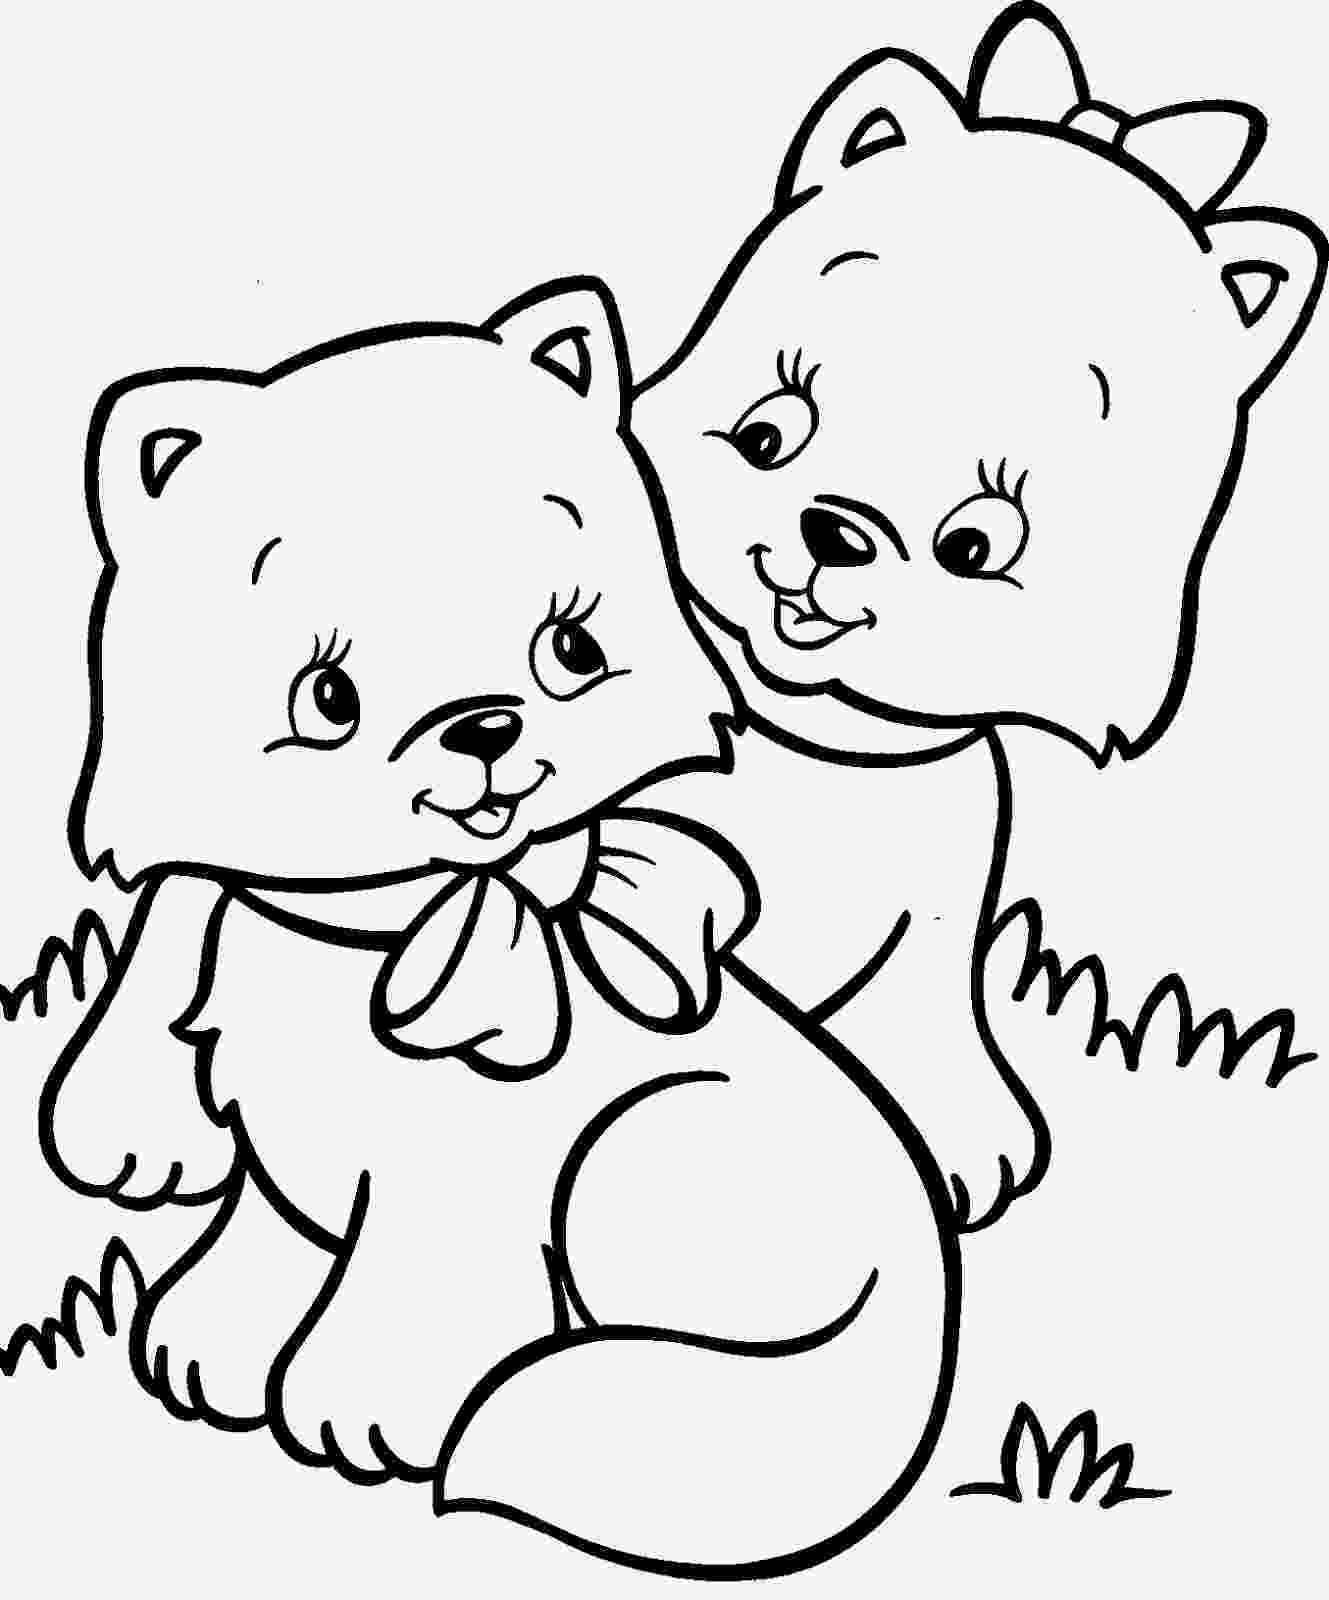 coloring pages of kittens kitten coloring pages best coloring pages for kids kittens pages of coloring